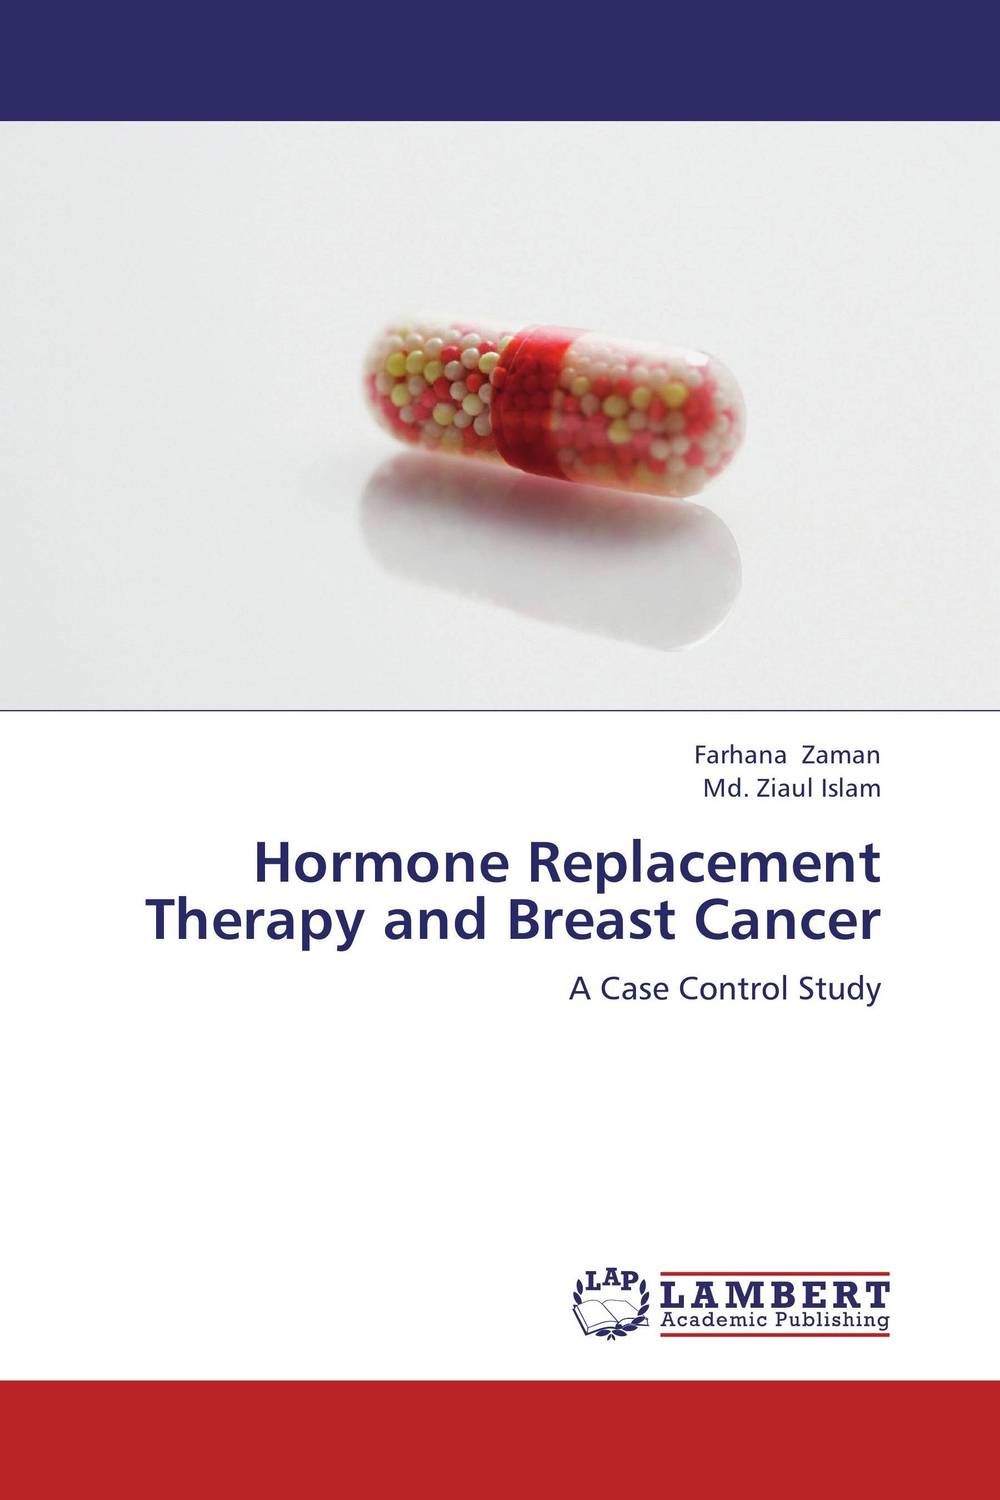 Hormone Replacement Therapy and Breast Cancer choices in breast cancer treatment – medical specialists and cancer survivors tell you what you need to know